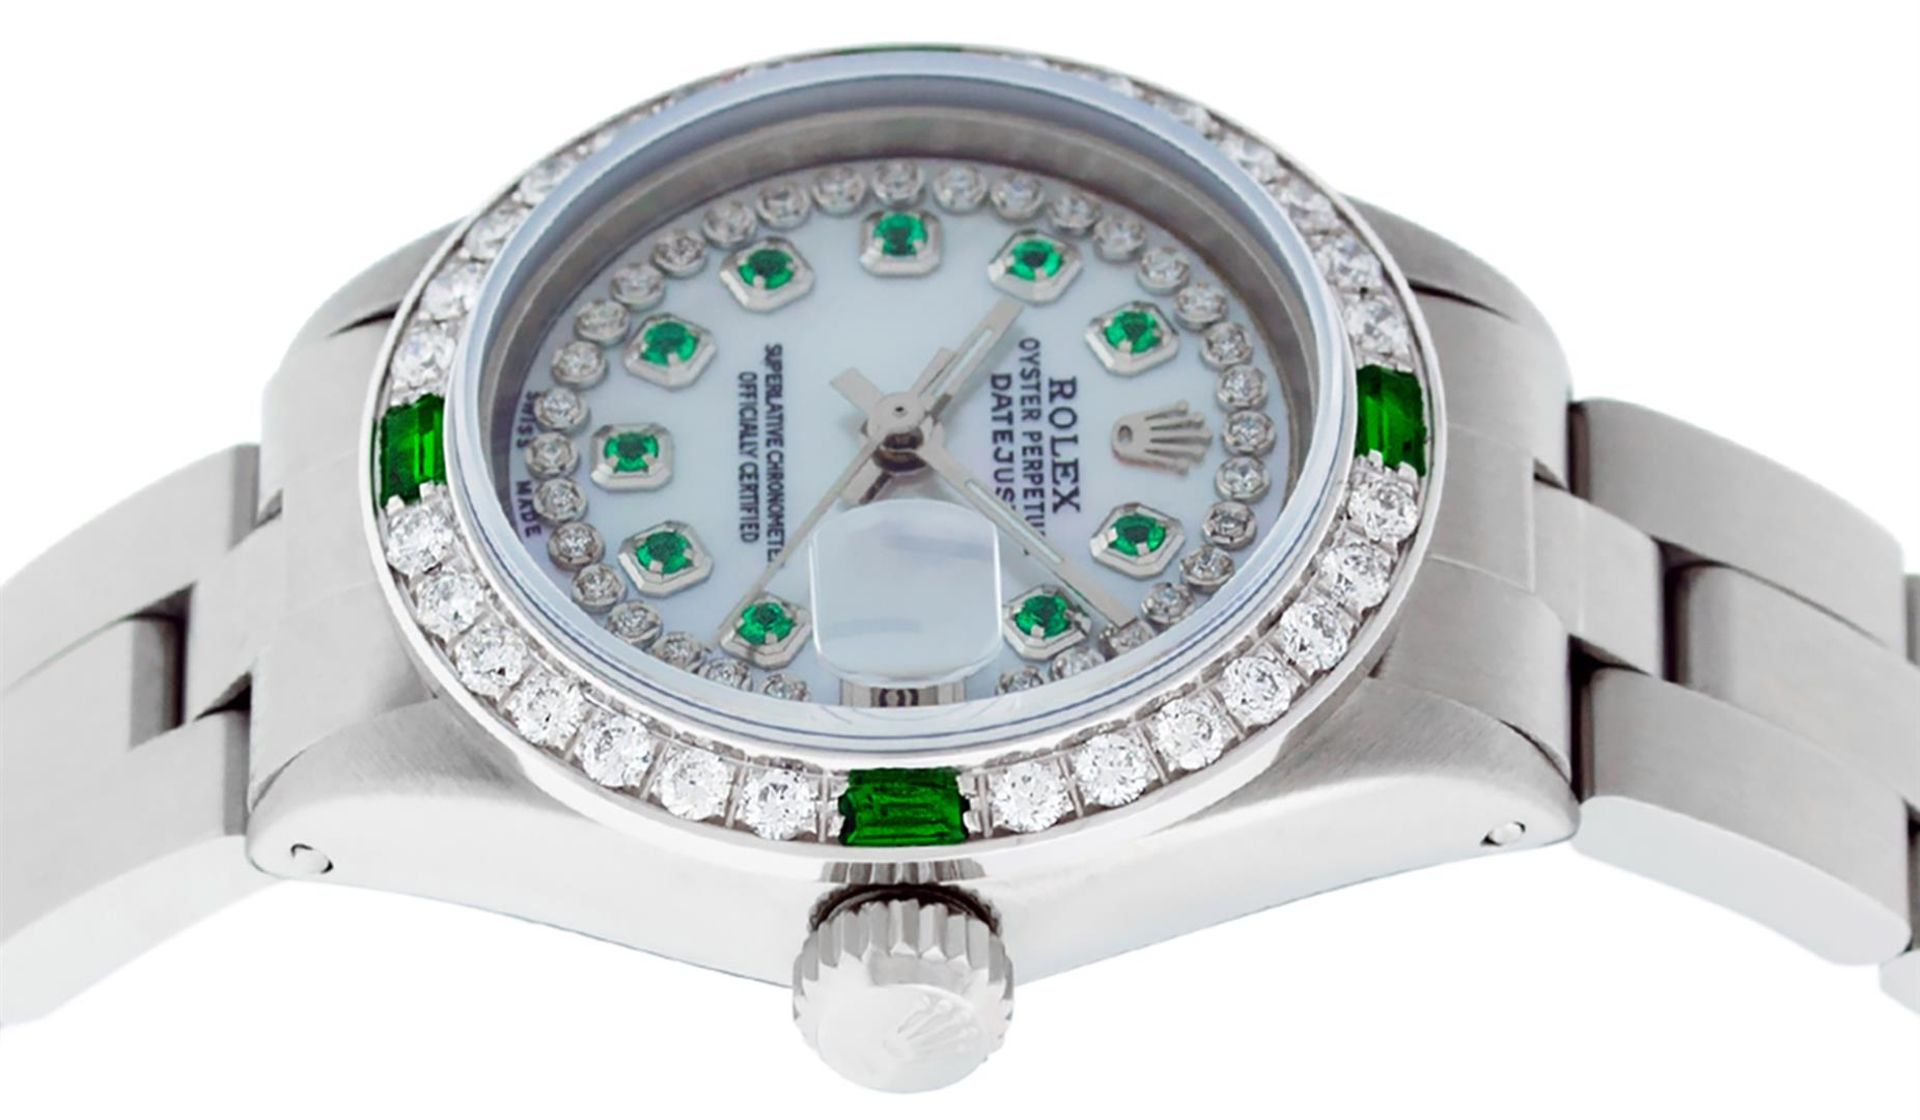 Rolex Ladies Stainless Steel MOP Emerald & Diamond Oyster Perpetaul Datejust Wri - Image 9 of 9